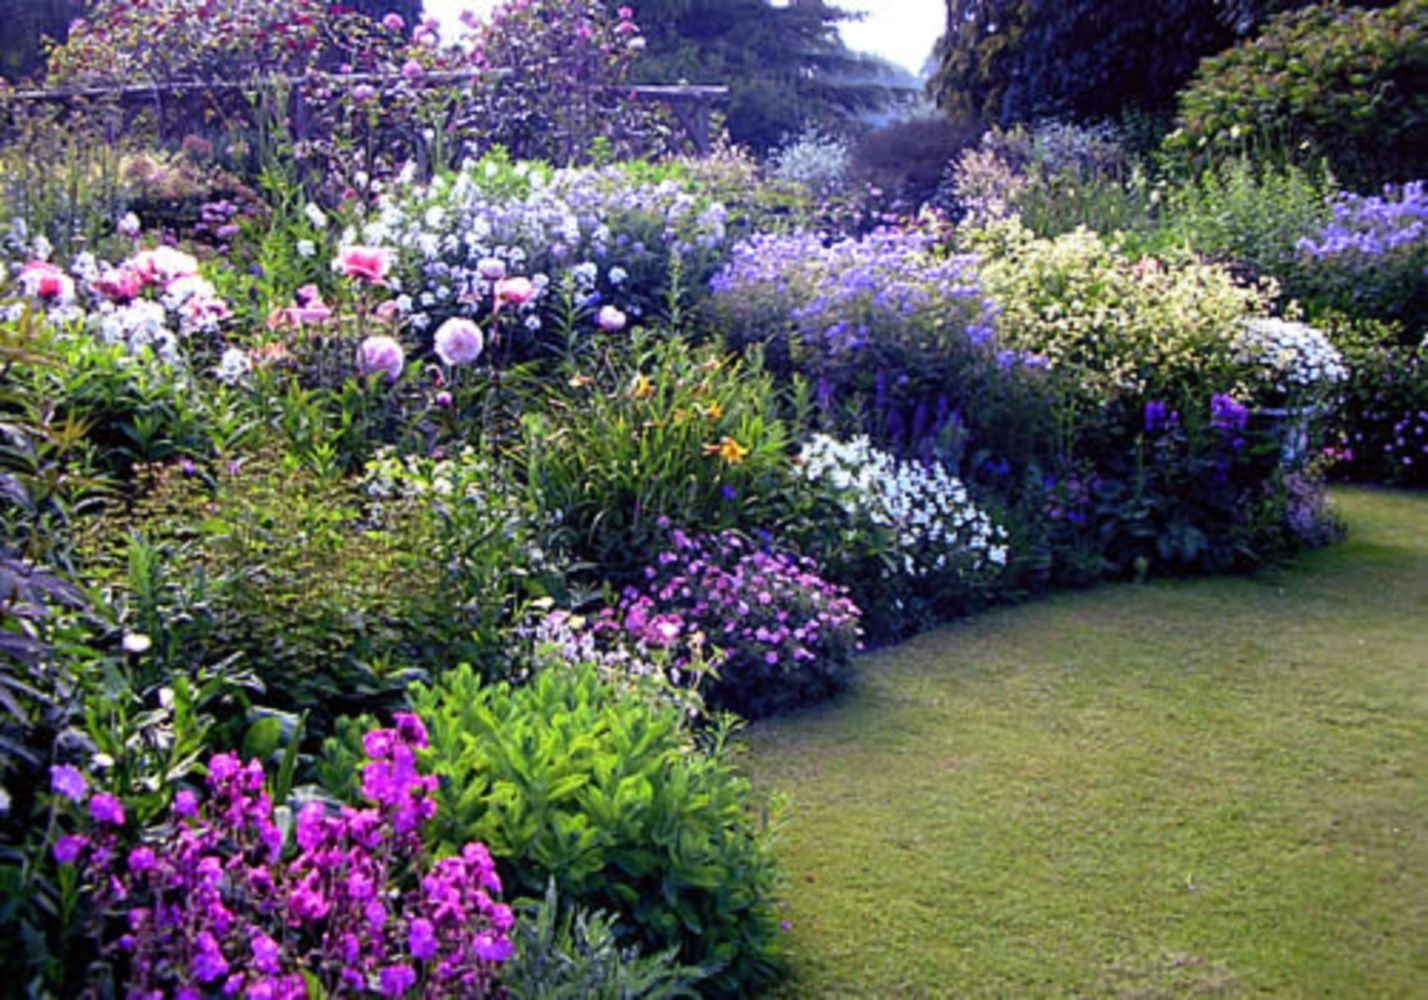 image result for english garden flower bed | flowers i wish to add